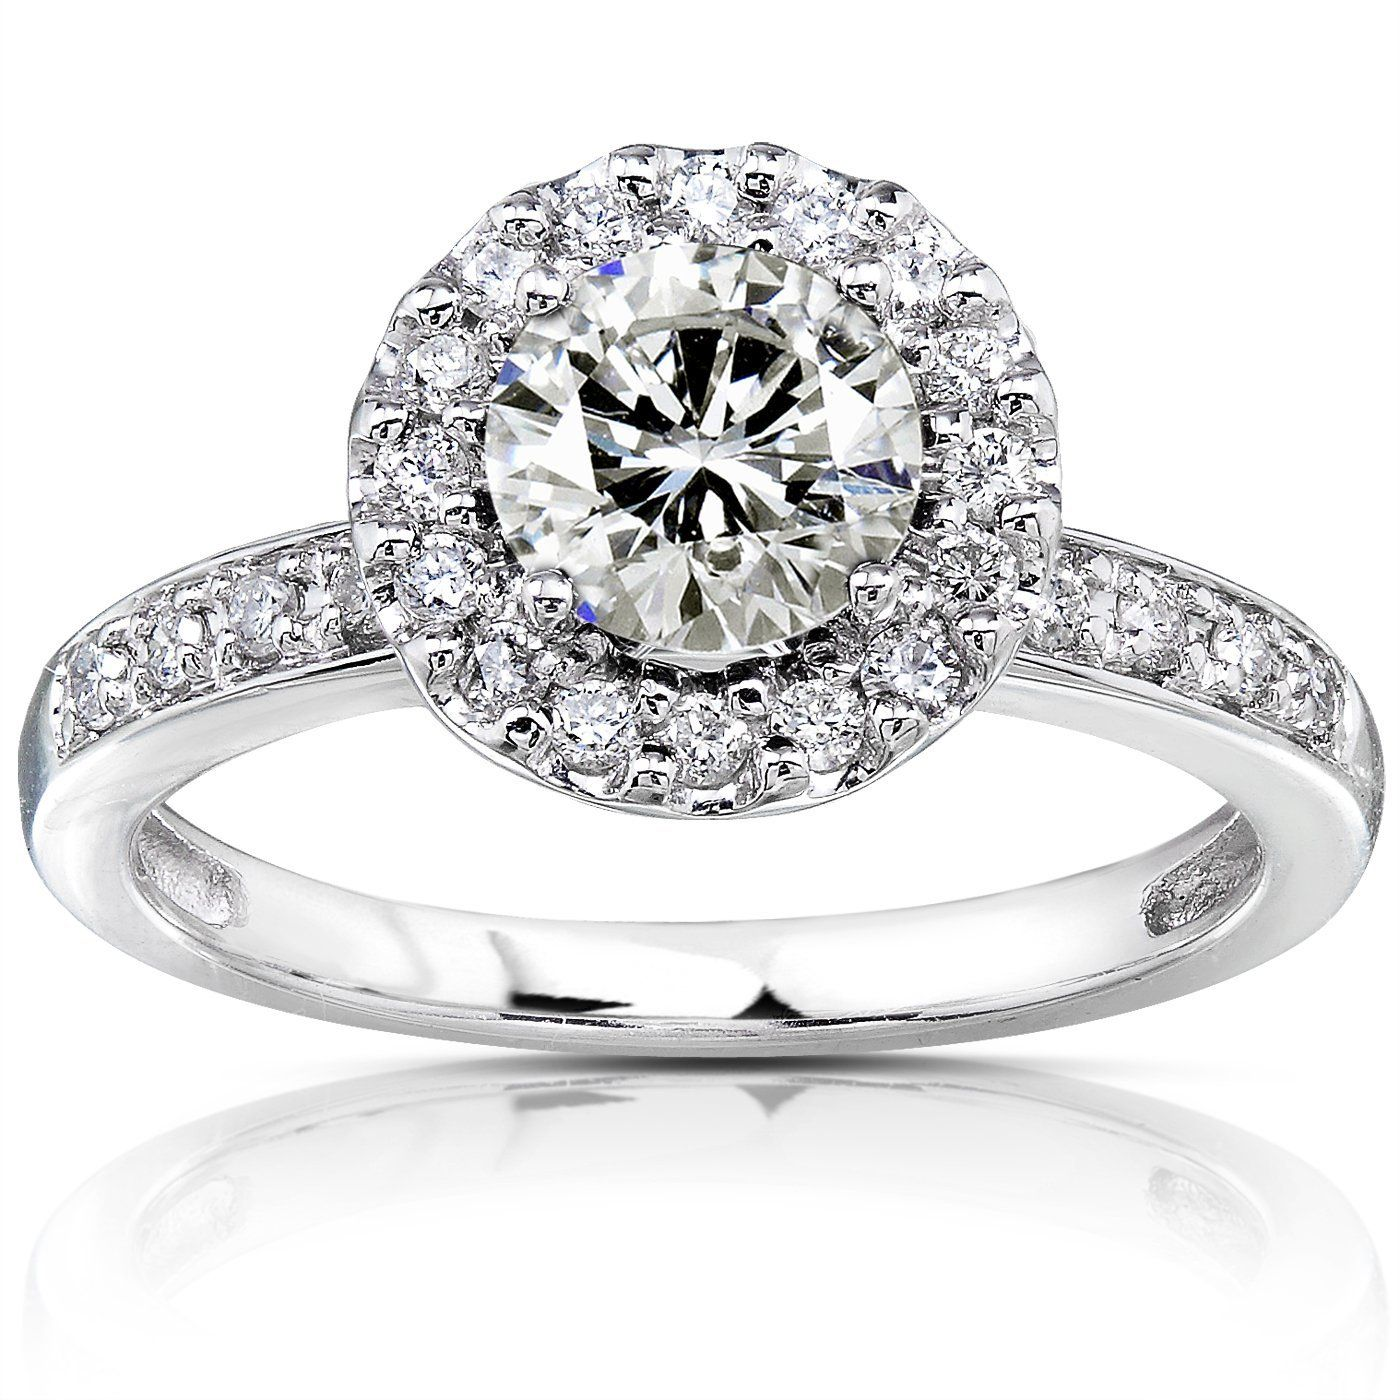 14k white gold round pave diamond engagement ring - here's a very